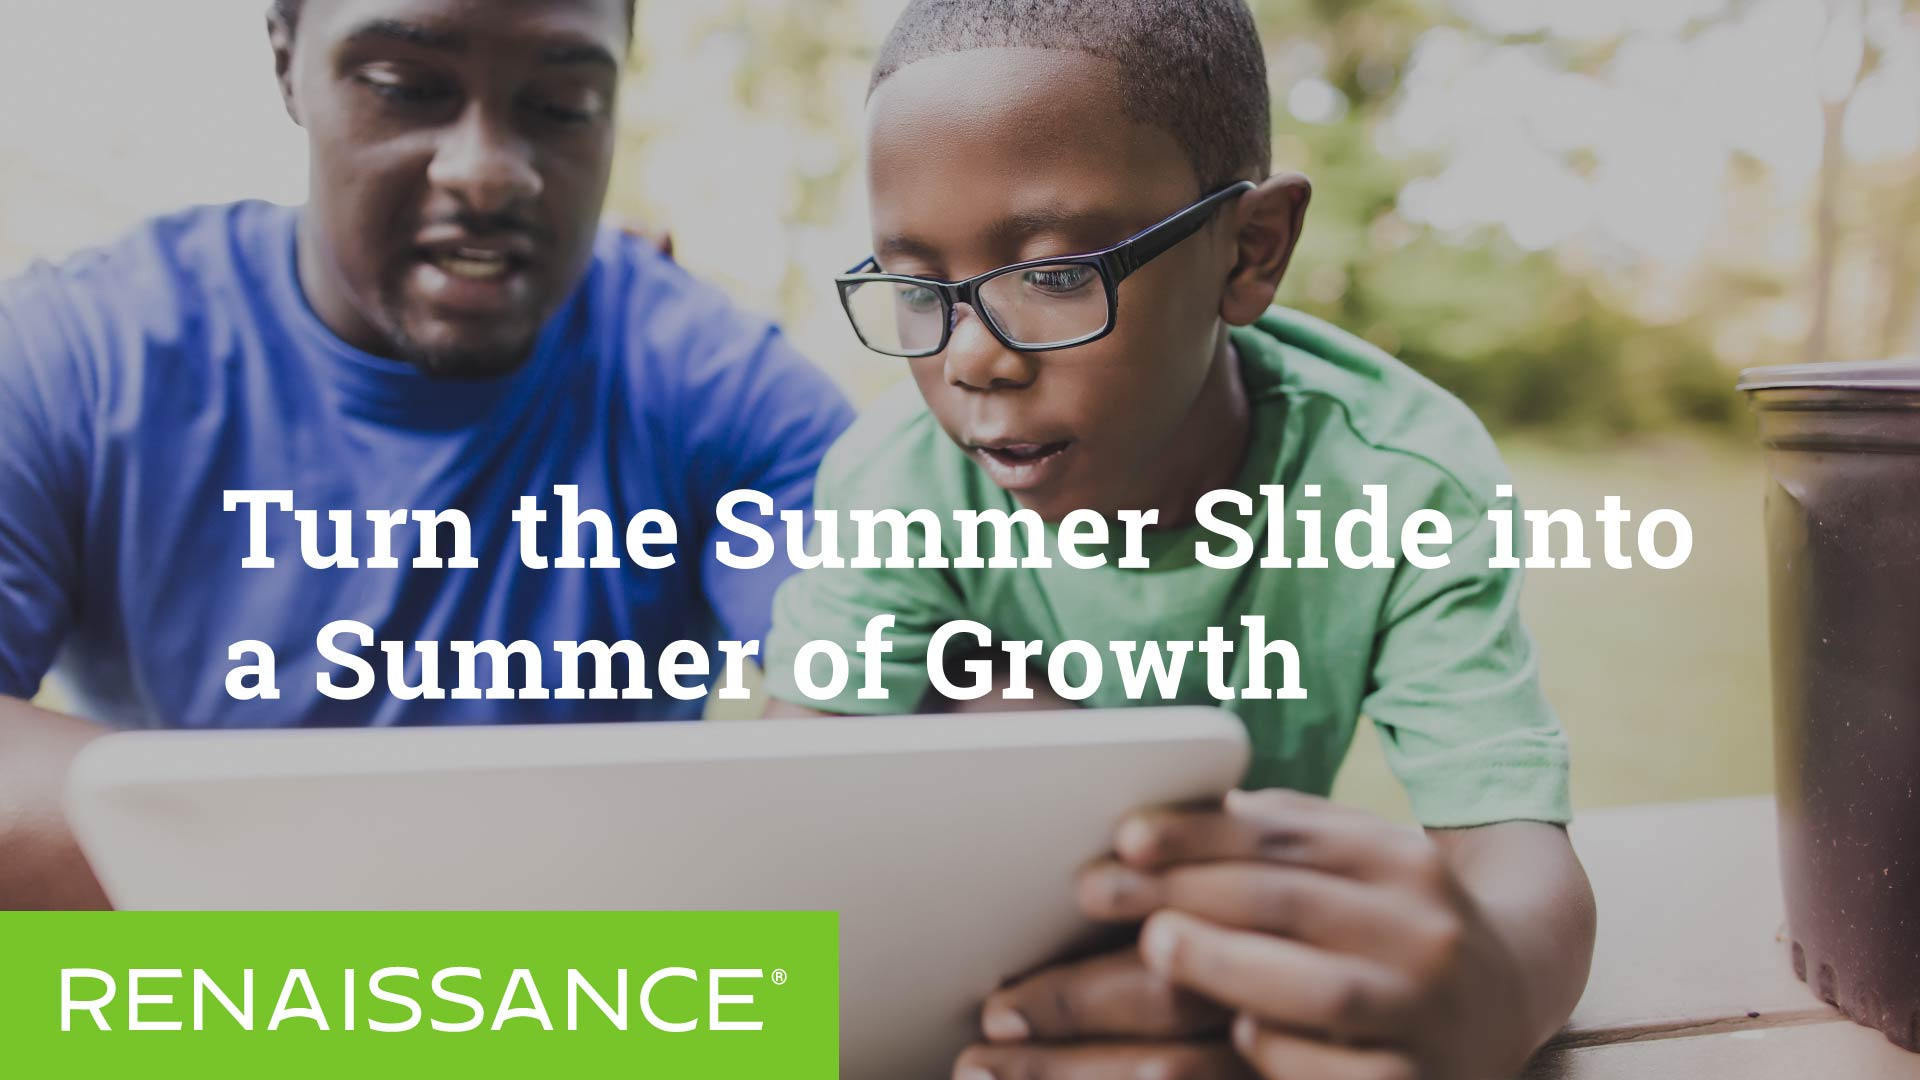 Turn the Summer Slide into a Summer of Growth